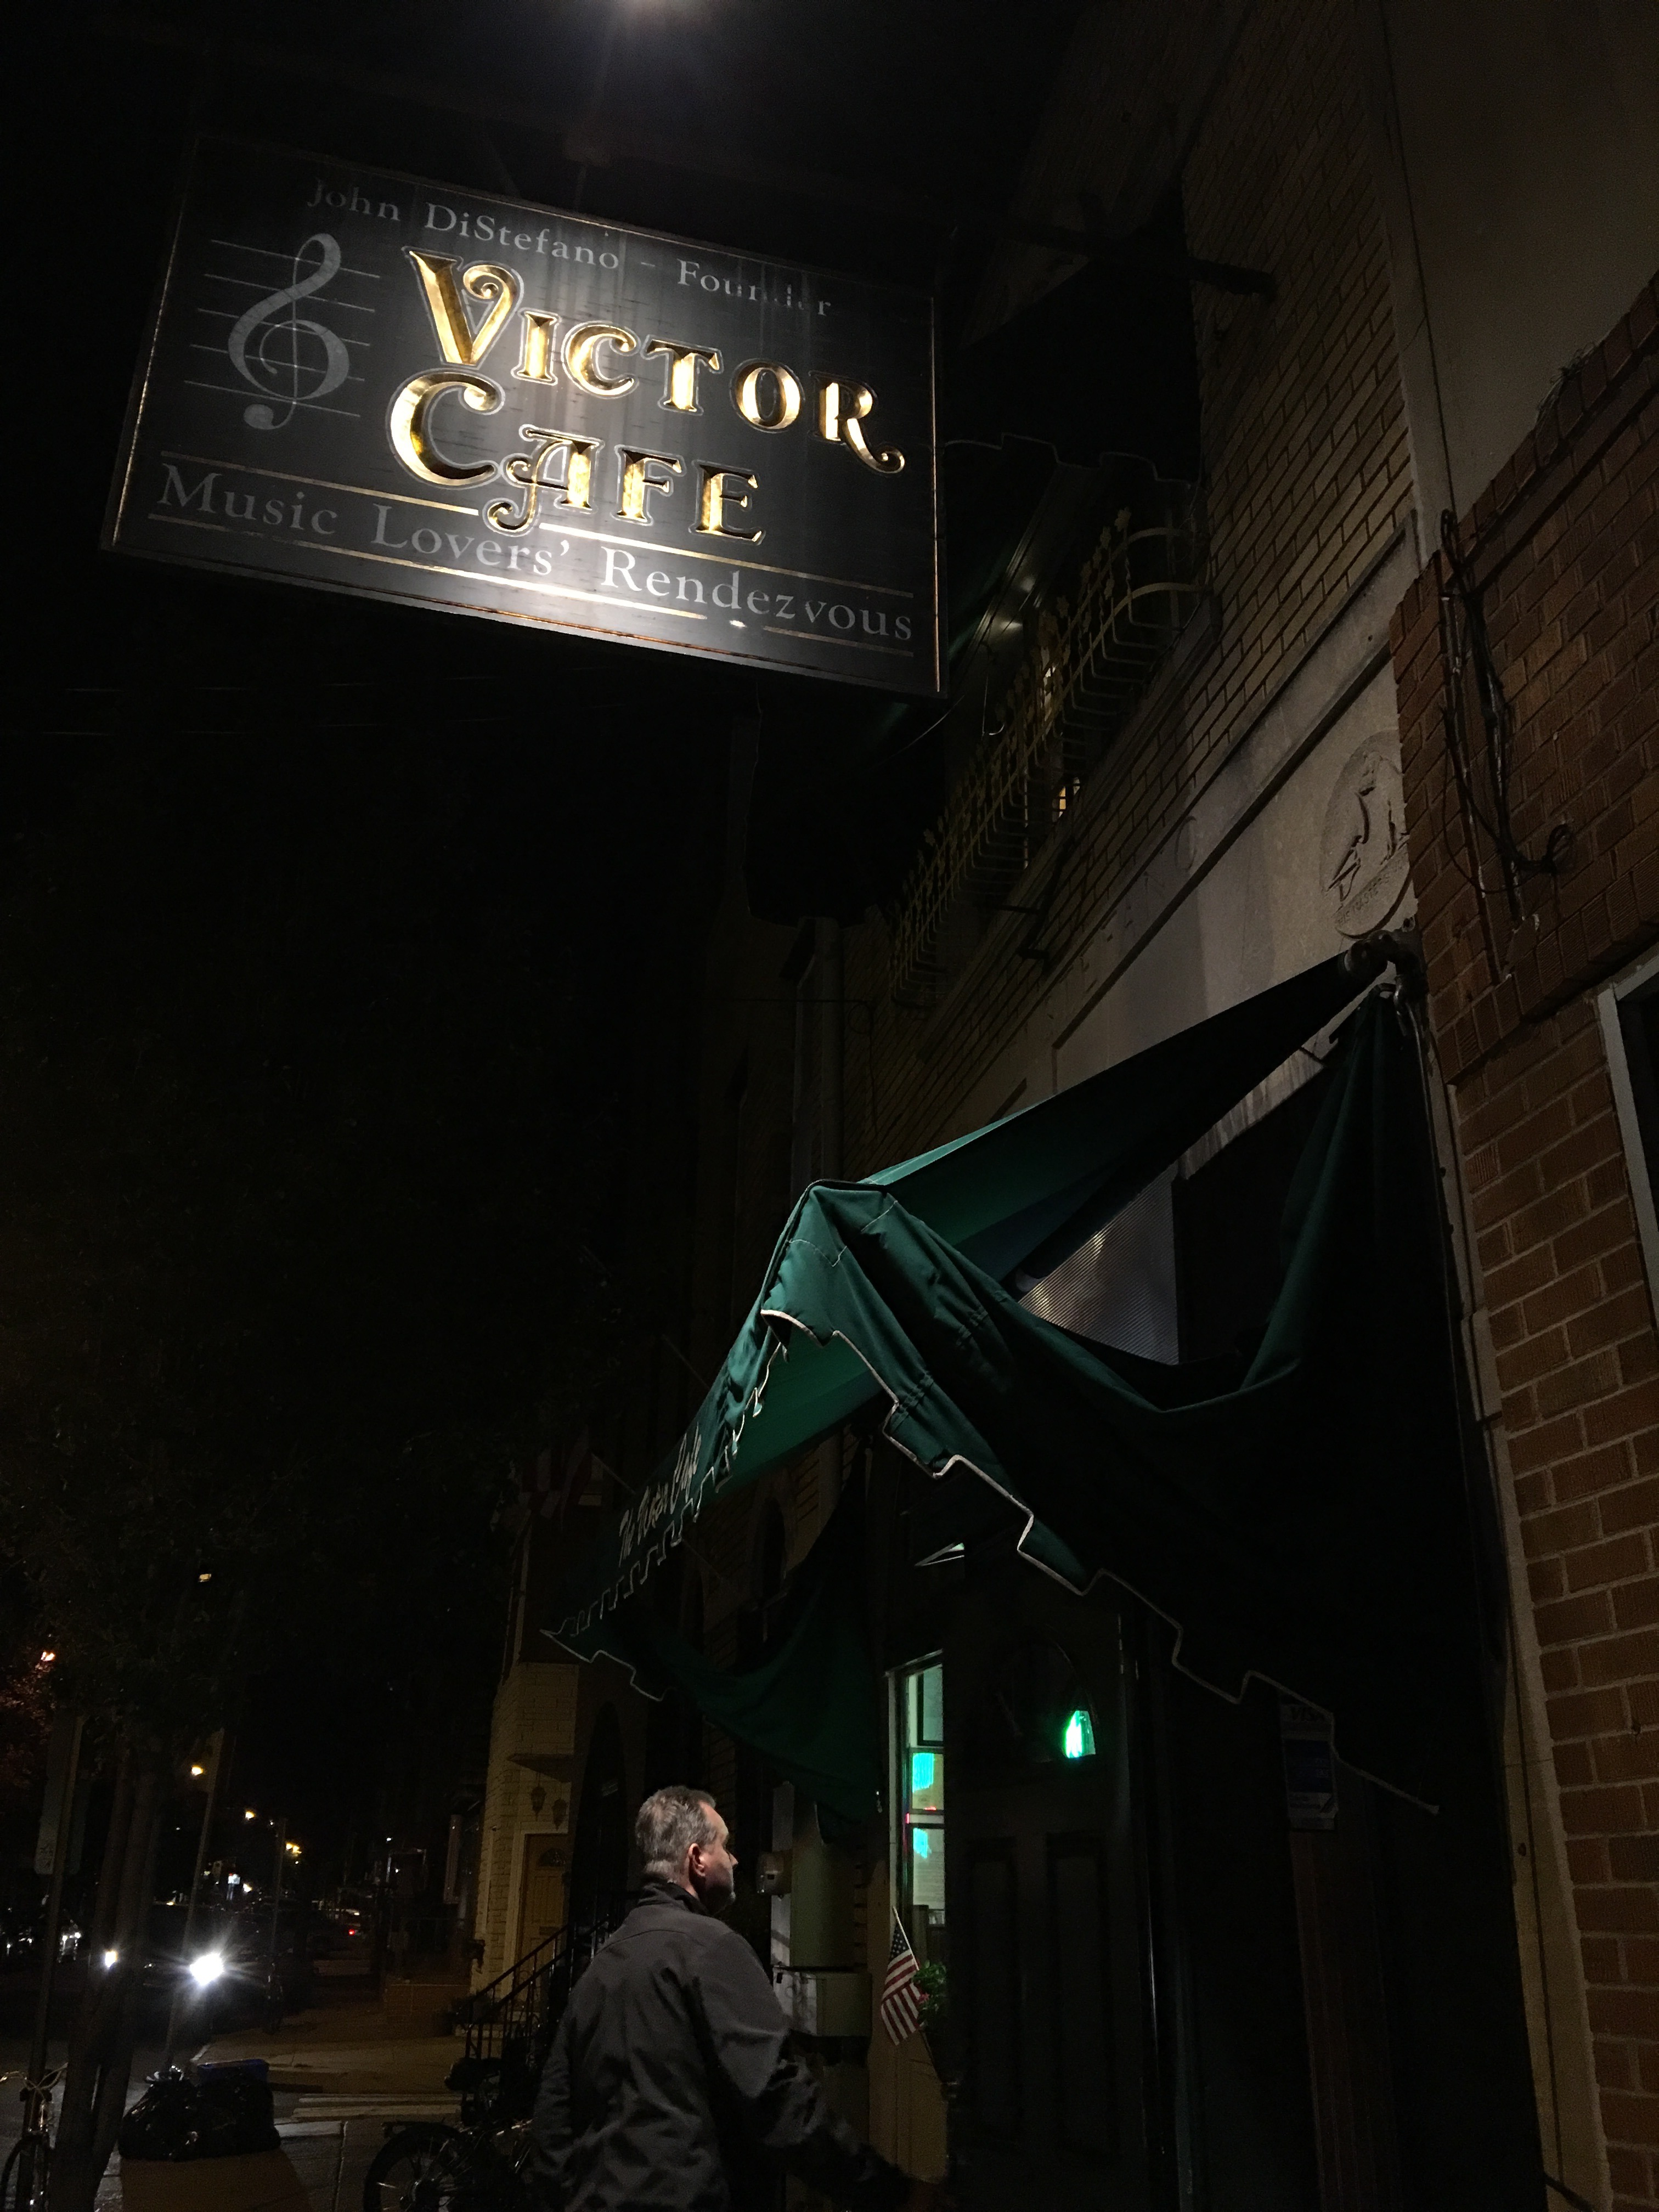 Victor's Cafe Philly - Best Italian Restaurant